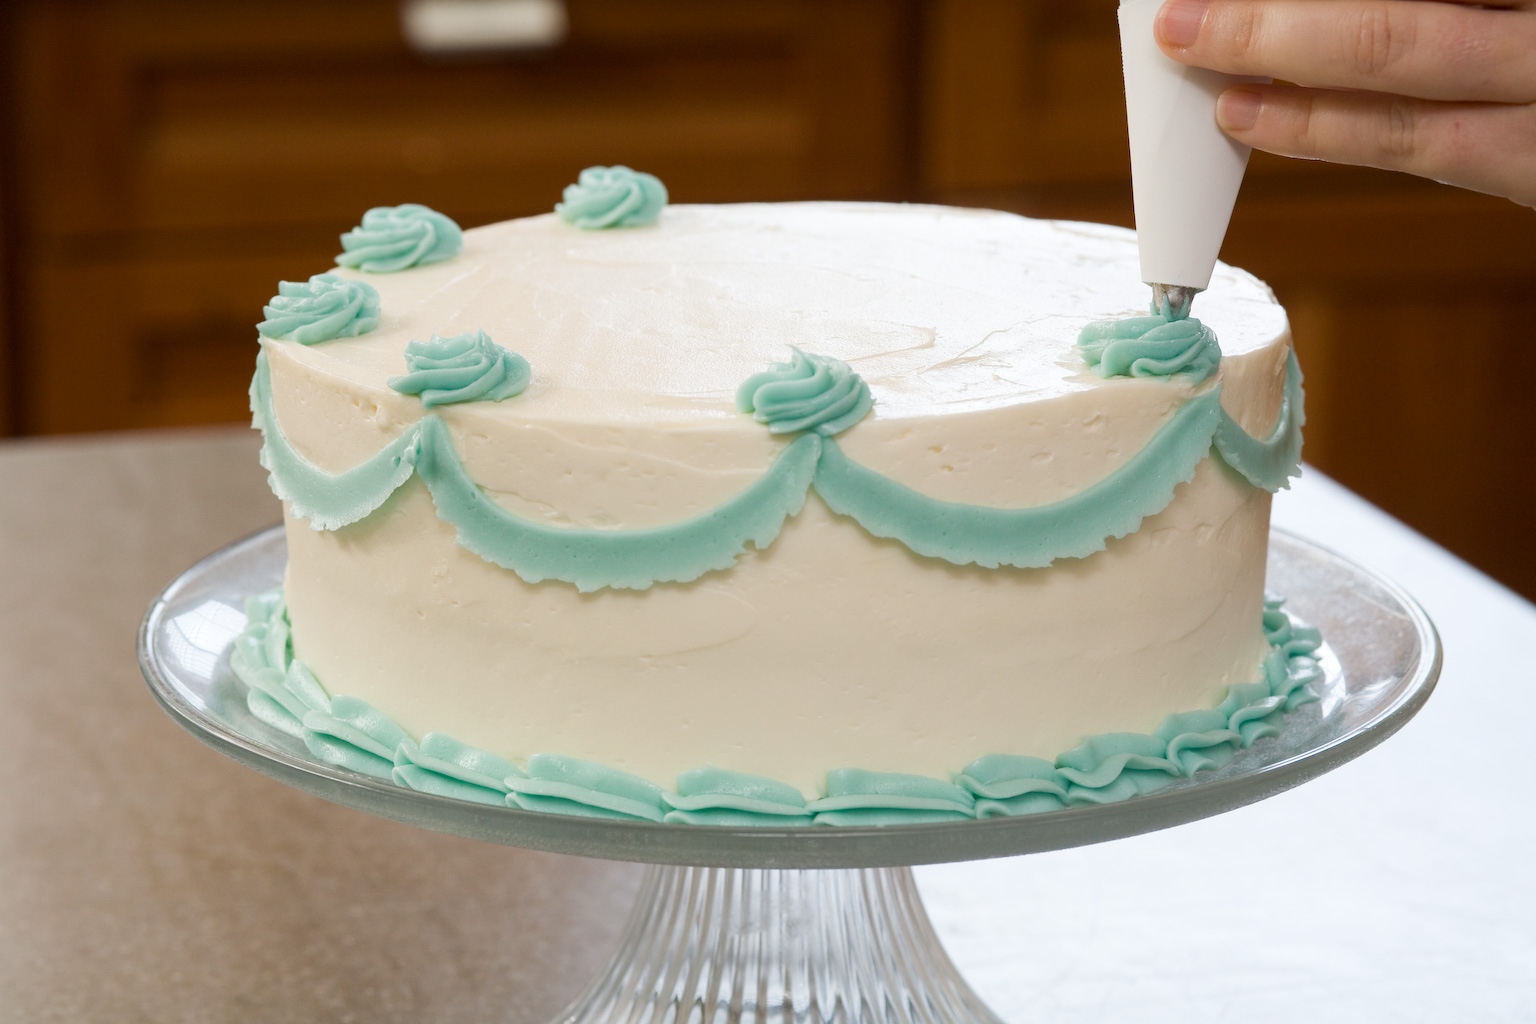 Decoration Ideas Of Cake : Easy Bake Games: Secrets to Decorating Layer Cakes